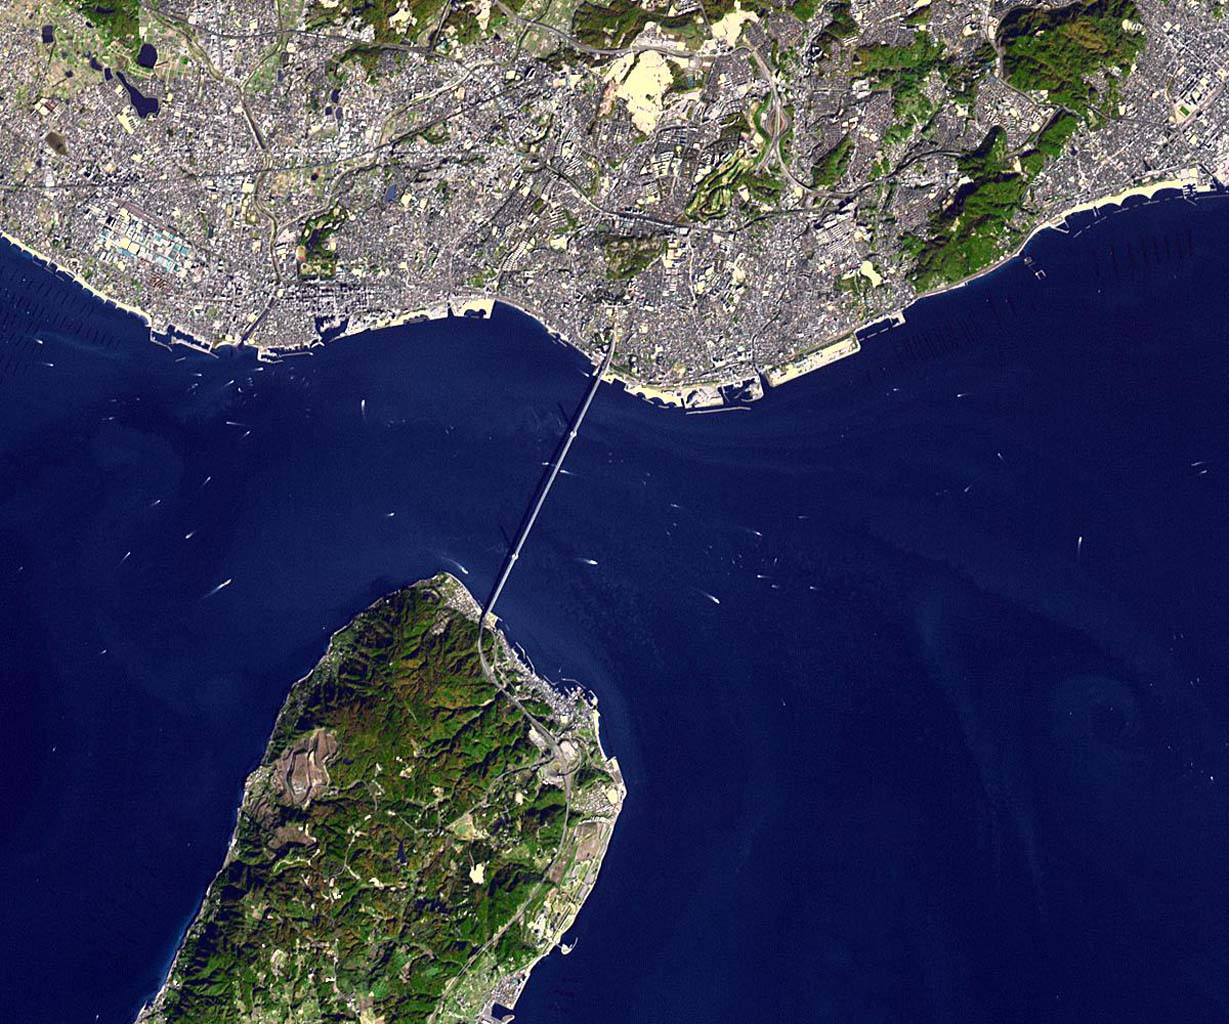 NASA's Terra spacecraft shows the Akashi Kaikyo Bridge (or Pearl Bridge), the longest central span of any suspension bridge in the world, at 1991 meters, connecting the city of Kobe, Japan with Iwaja on Awaji Island by crossing the busy Akashi Strait.